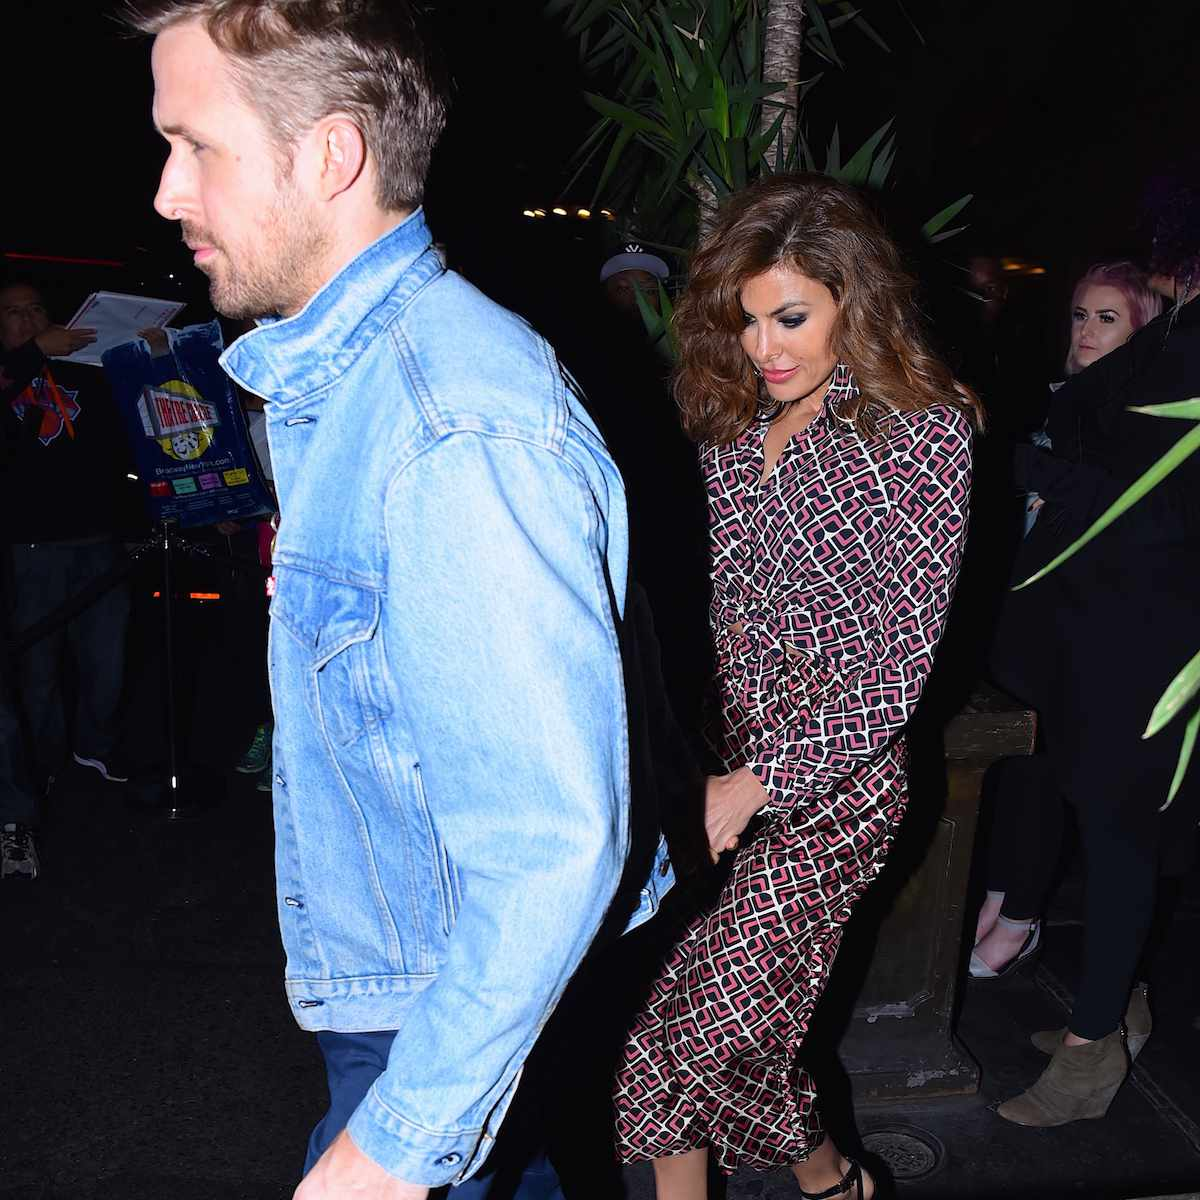 A side-profile shot of Ryan Gosing in a denim jacket with wife Eva Mendes in tow in a printed dress